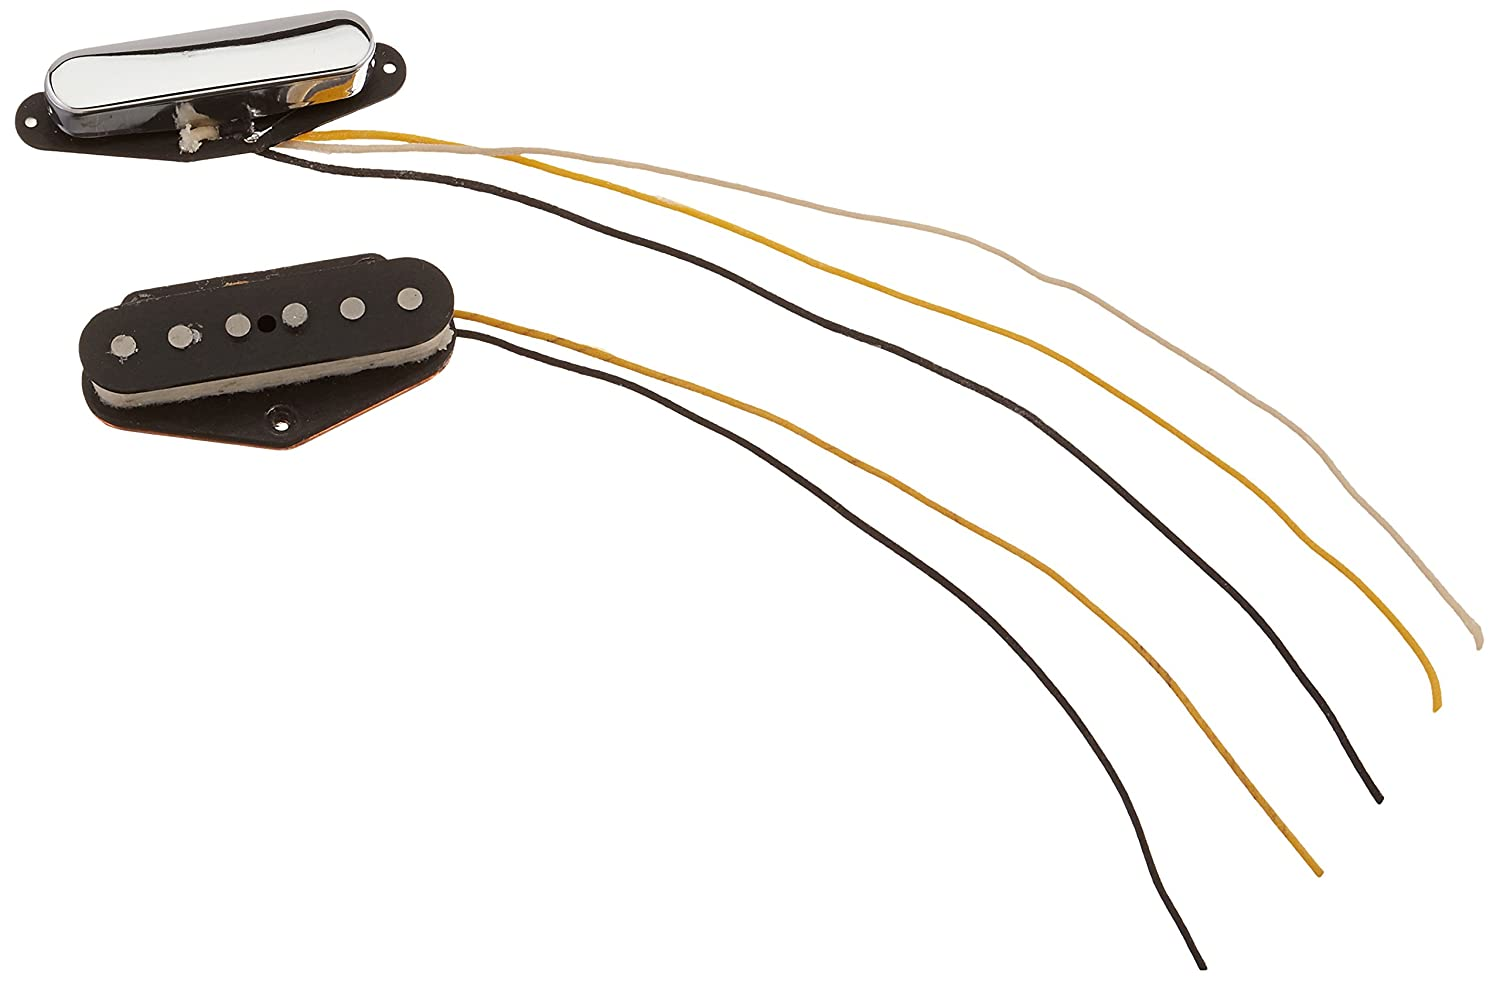 Fender Custom Shop Texas Special Telecaster Pickups Wiring Diagram Musical Instruments